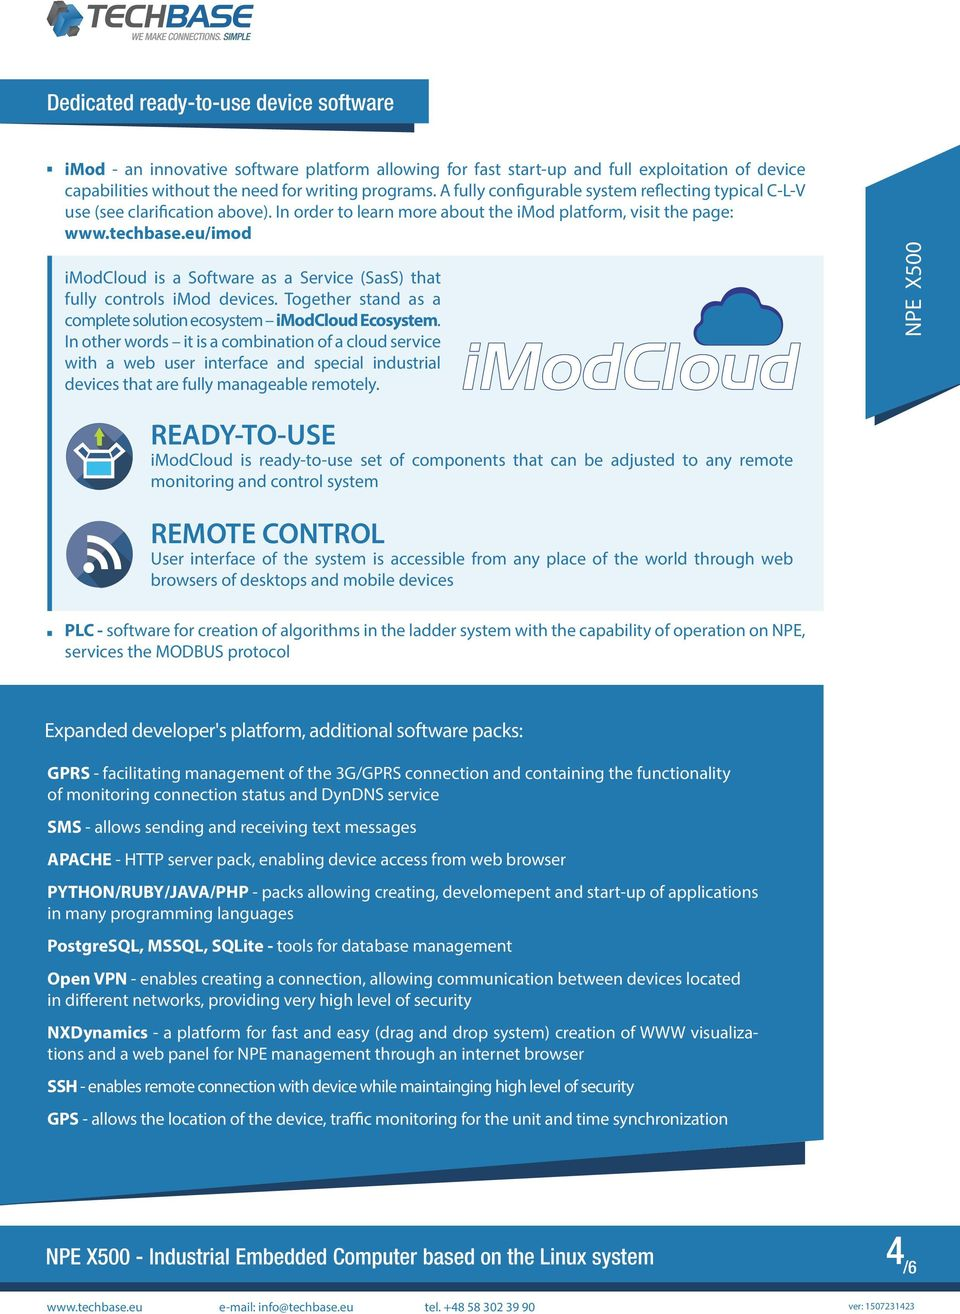 eu/imod imodcloud is a Software as a Service (SasS) that fully controls imod devices. Together stand as a complete solution ecosystem imodcloud Ecosystem.